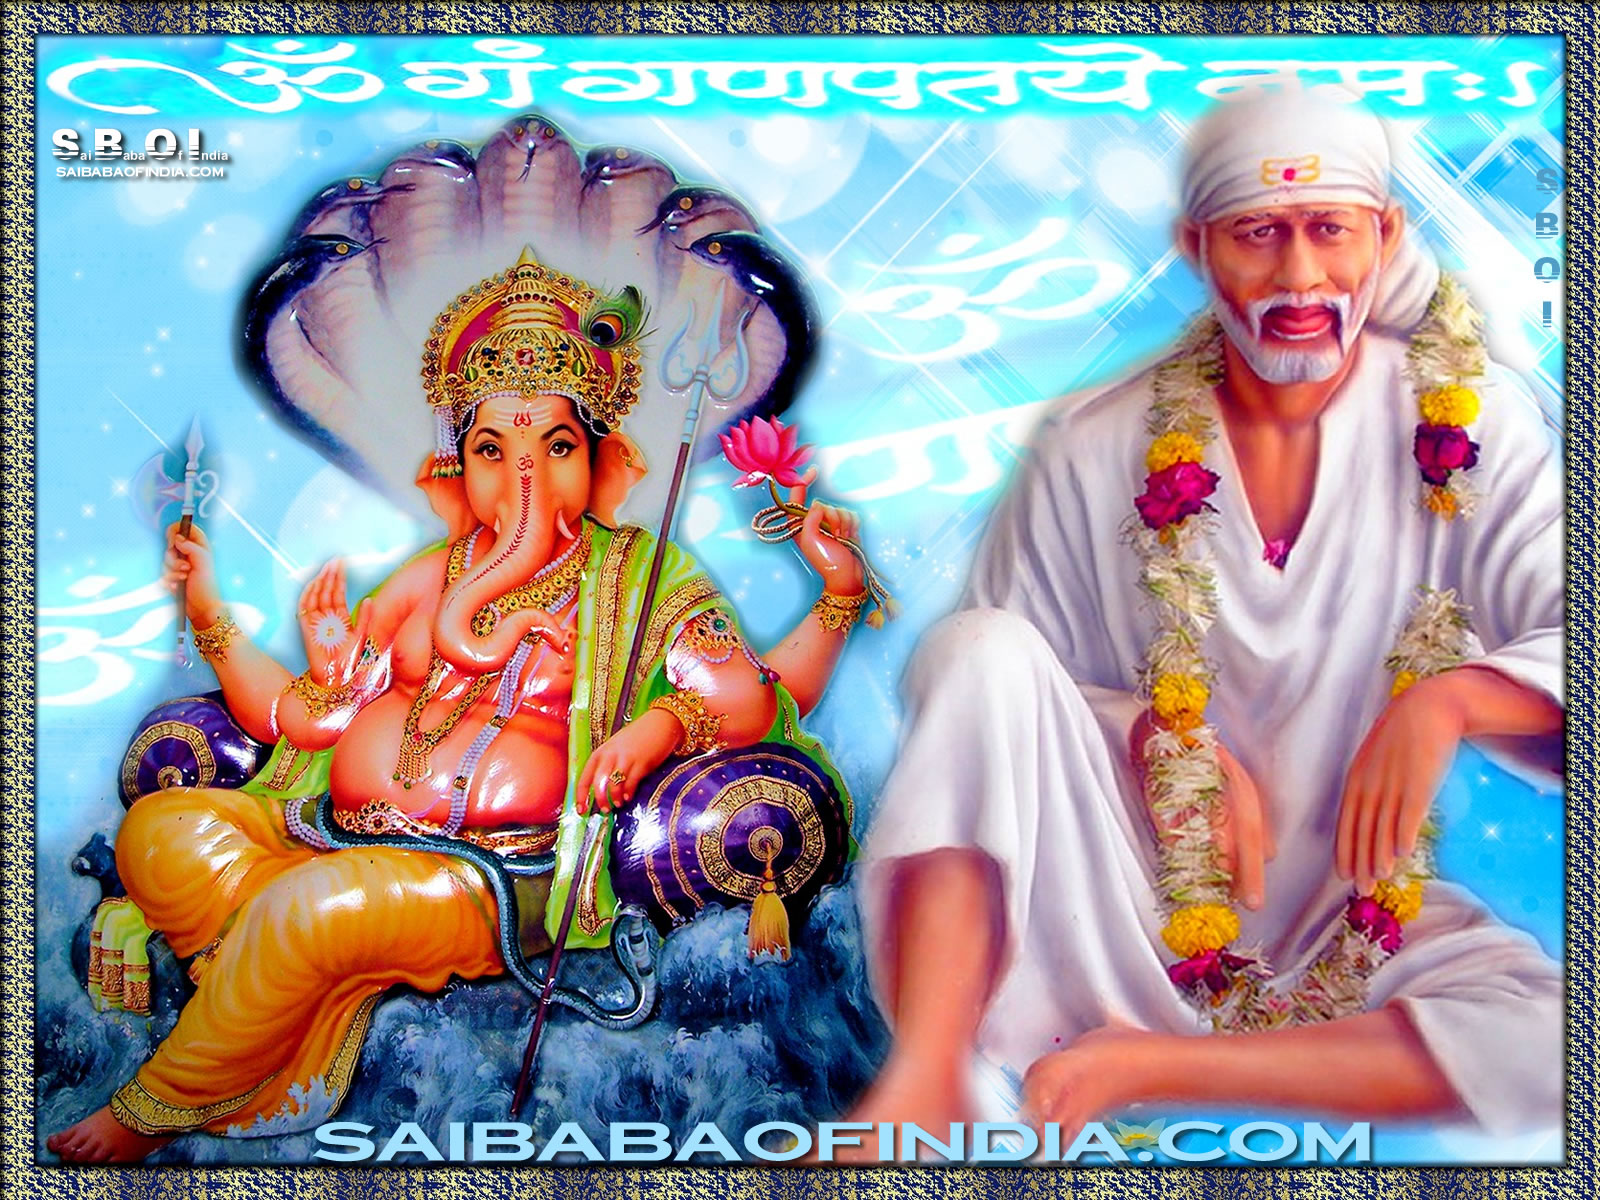 Photos Of Ganesh Ji Appearing On The Shirdi Sai Pictures In Udi